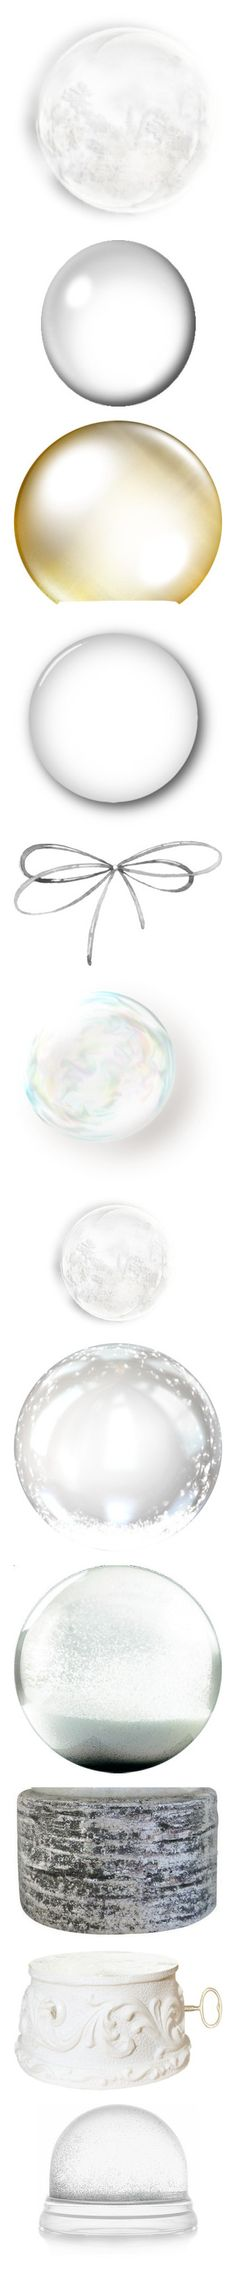 """""""Christmas snow globe"""" by suelb ❤ liked on Polyvore featuring effects, backgrounds, bubbles, circles, frames, round, borders, circular, picture frame and shadows"""